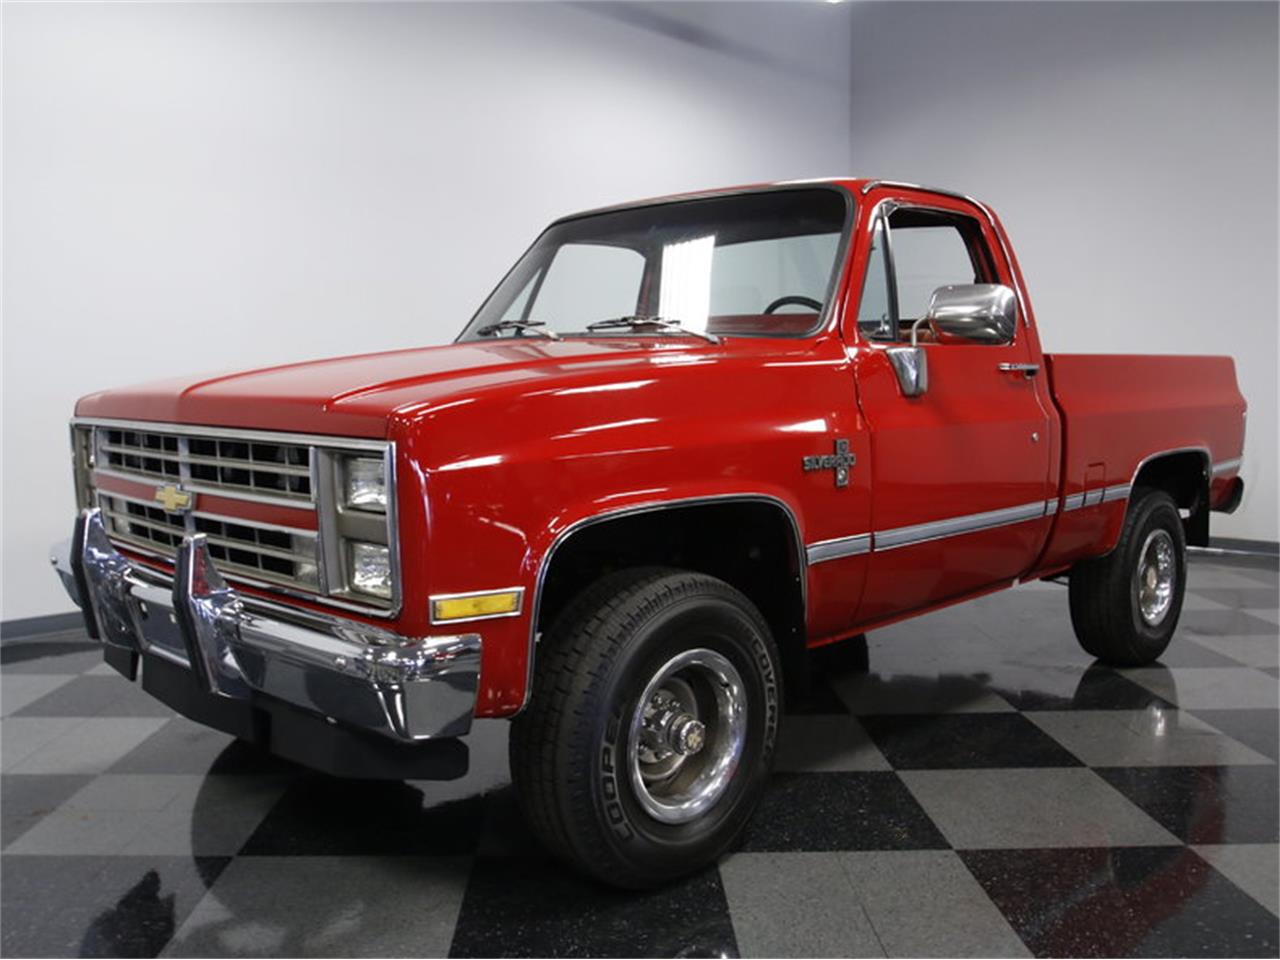 Large Picture of '85 Chevrolet K-10 located in Concord North Carolina Offered by Streetside Classics - Charlotte - LS4D